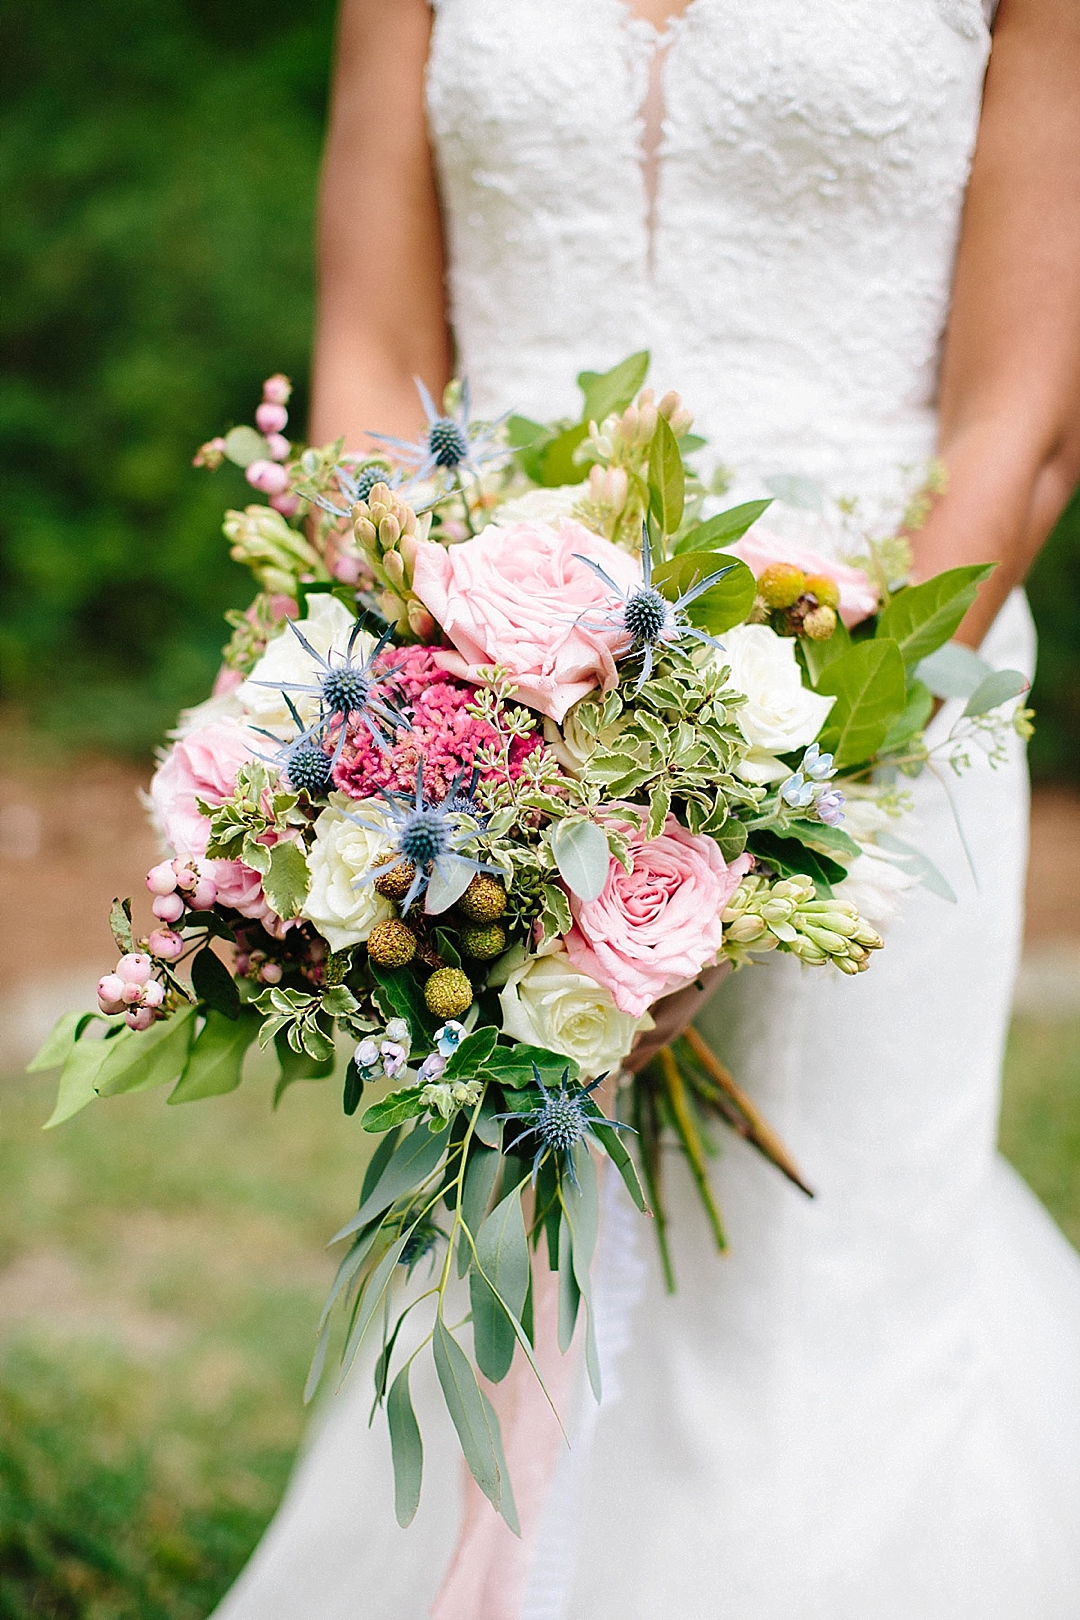 davids bridal for aisle society - bouquet